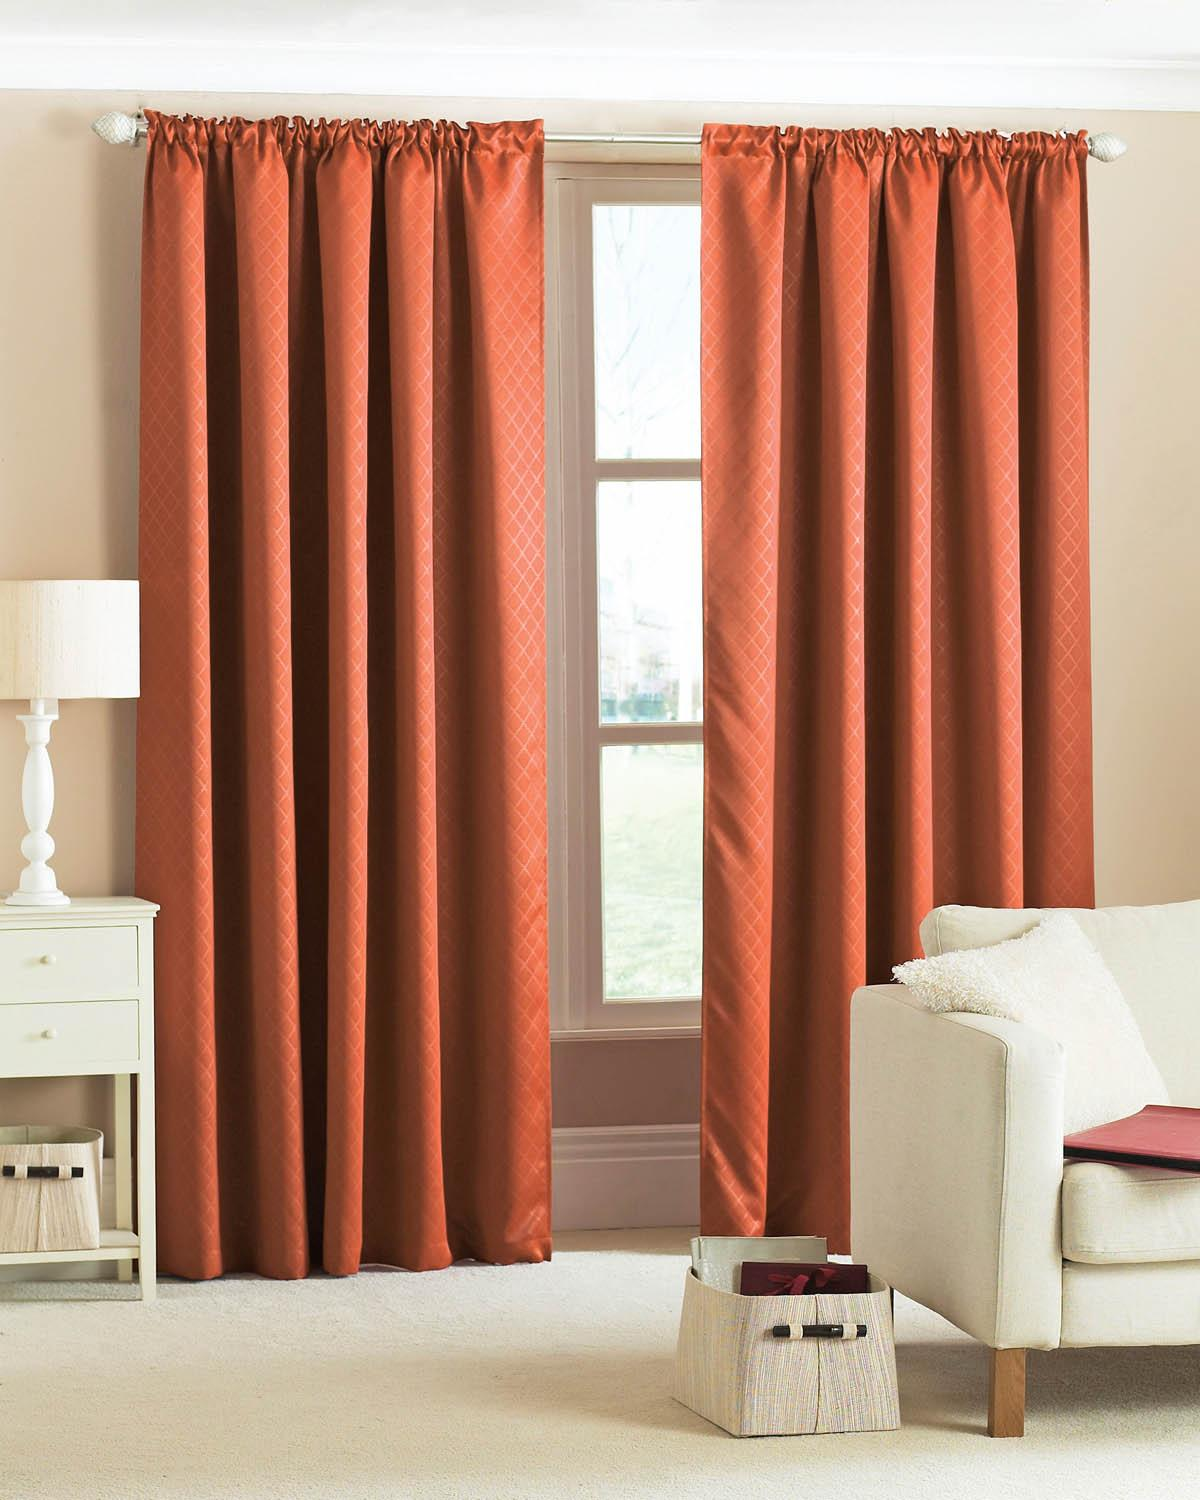 Diamond Woven Blackout Curtains | Free UK Delivery | Terrys Fabrics